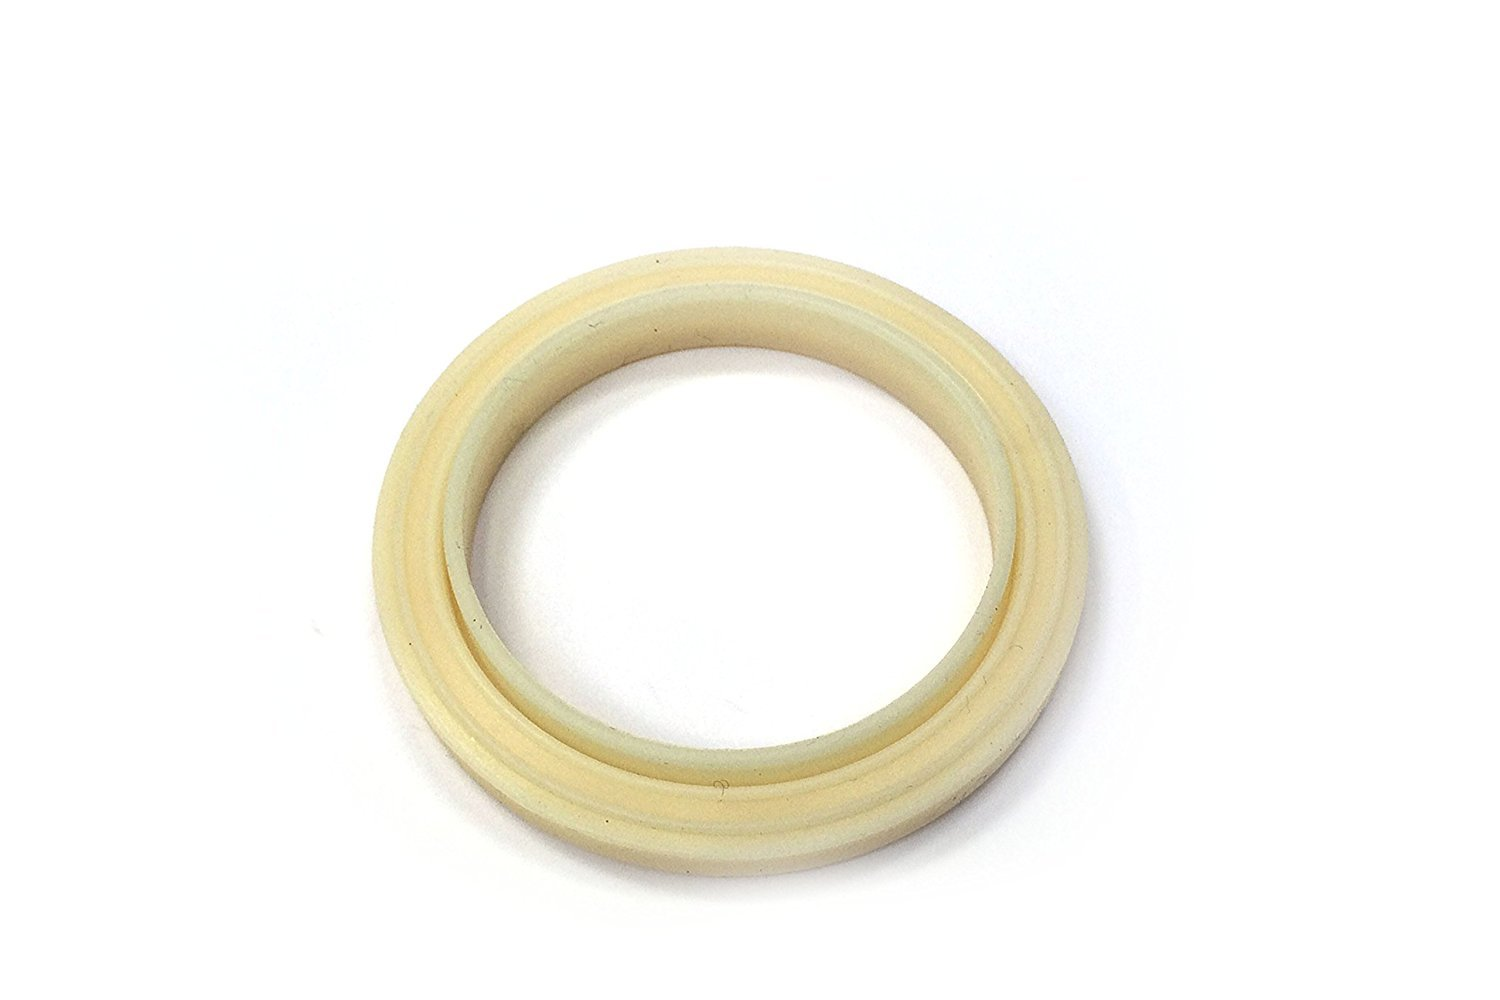 54mm Group Gasket, Silicone Steam Ring for Breville BES870XL, BES860XL, BES840XL, BES810BSS